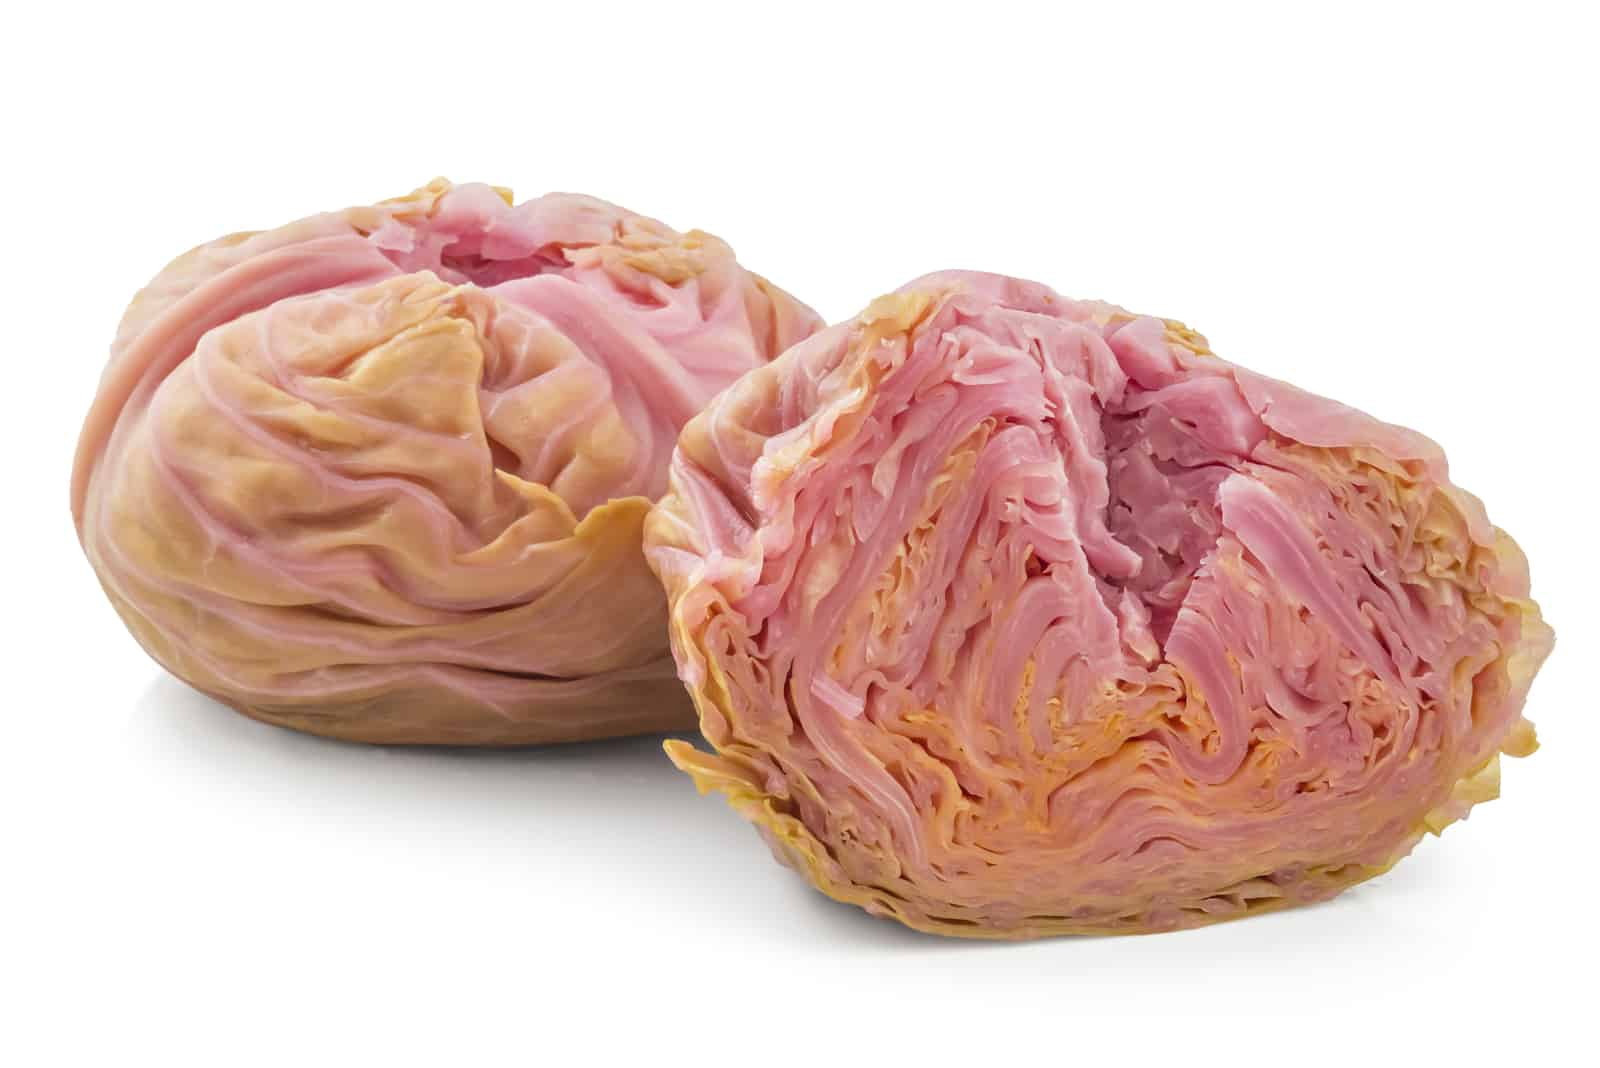 Pickled cabbages heads, one cutted